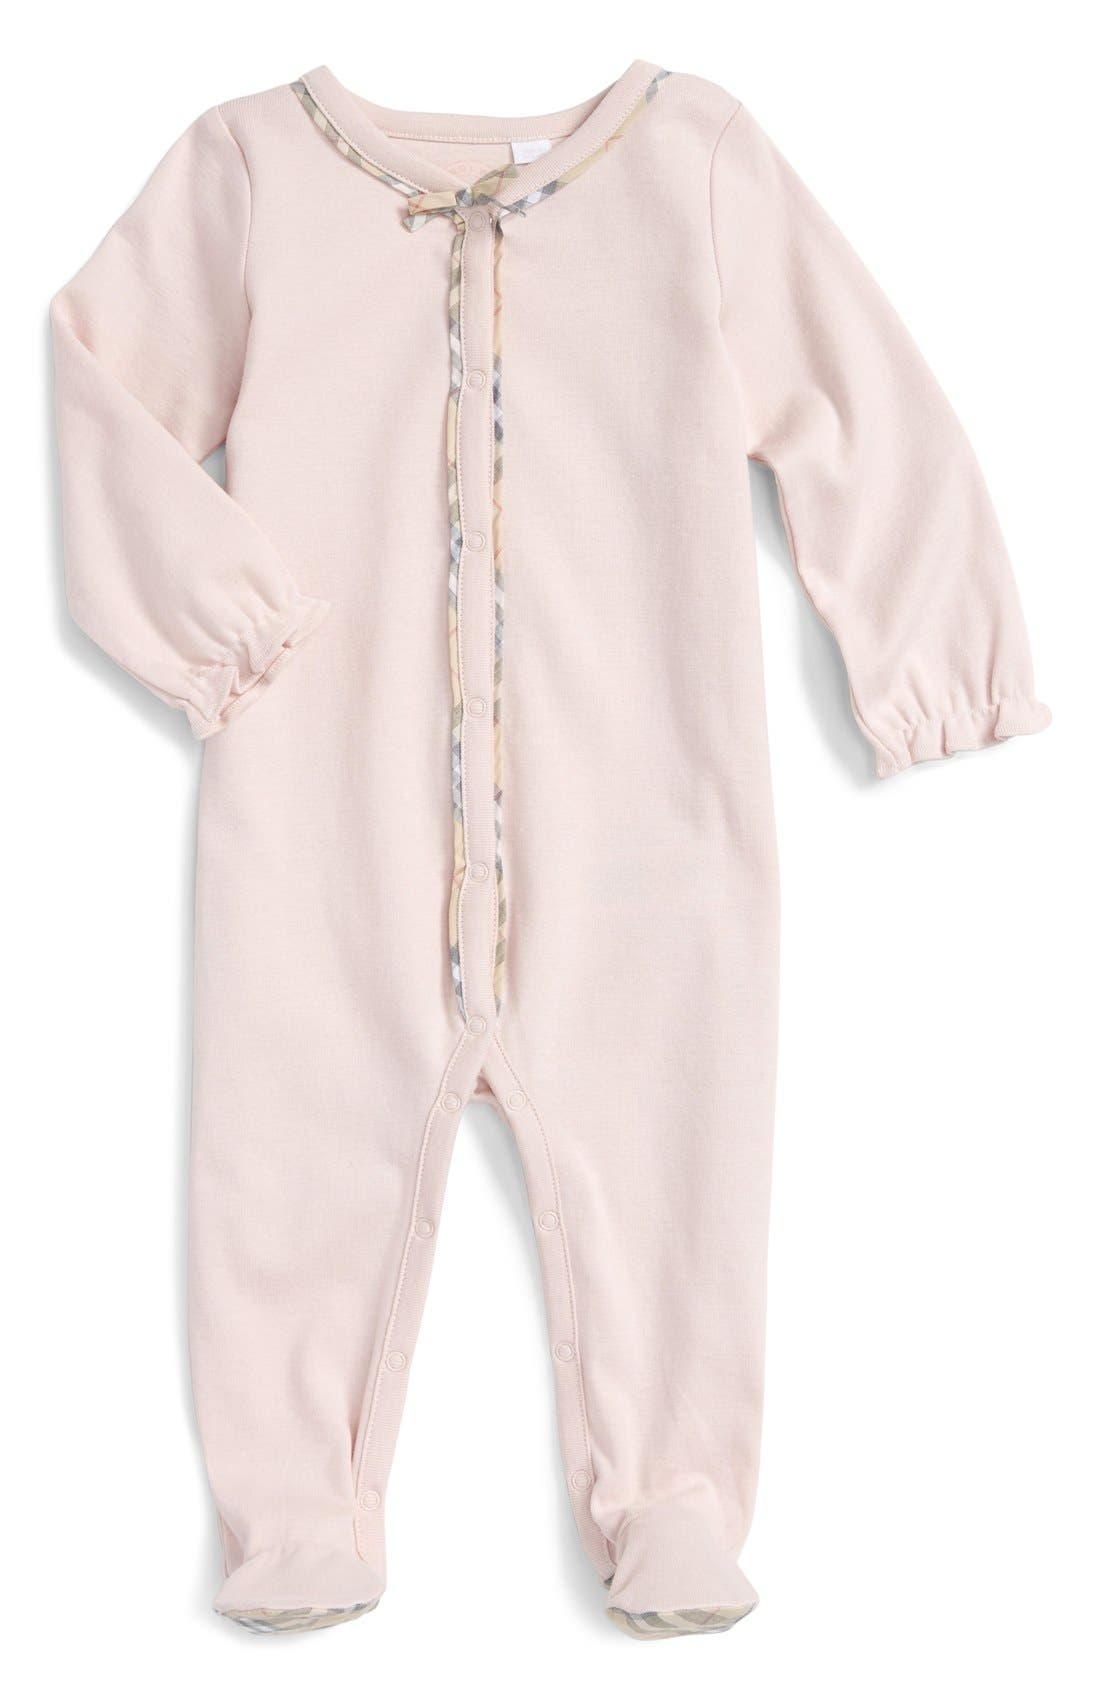 Main Image - Burberry 'Jacey' Cotton Footie (Baby Girls)